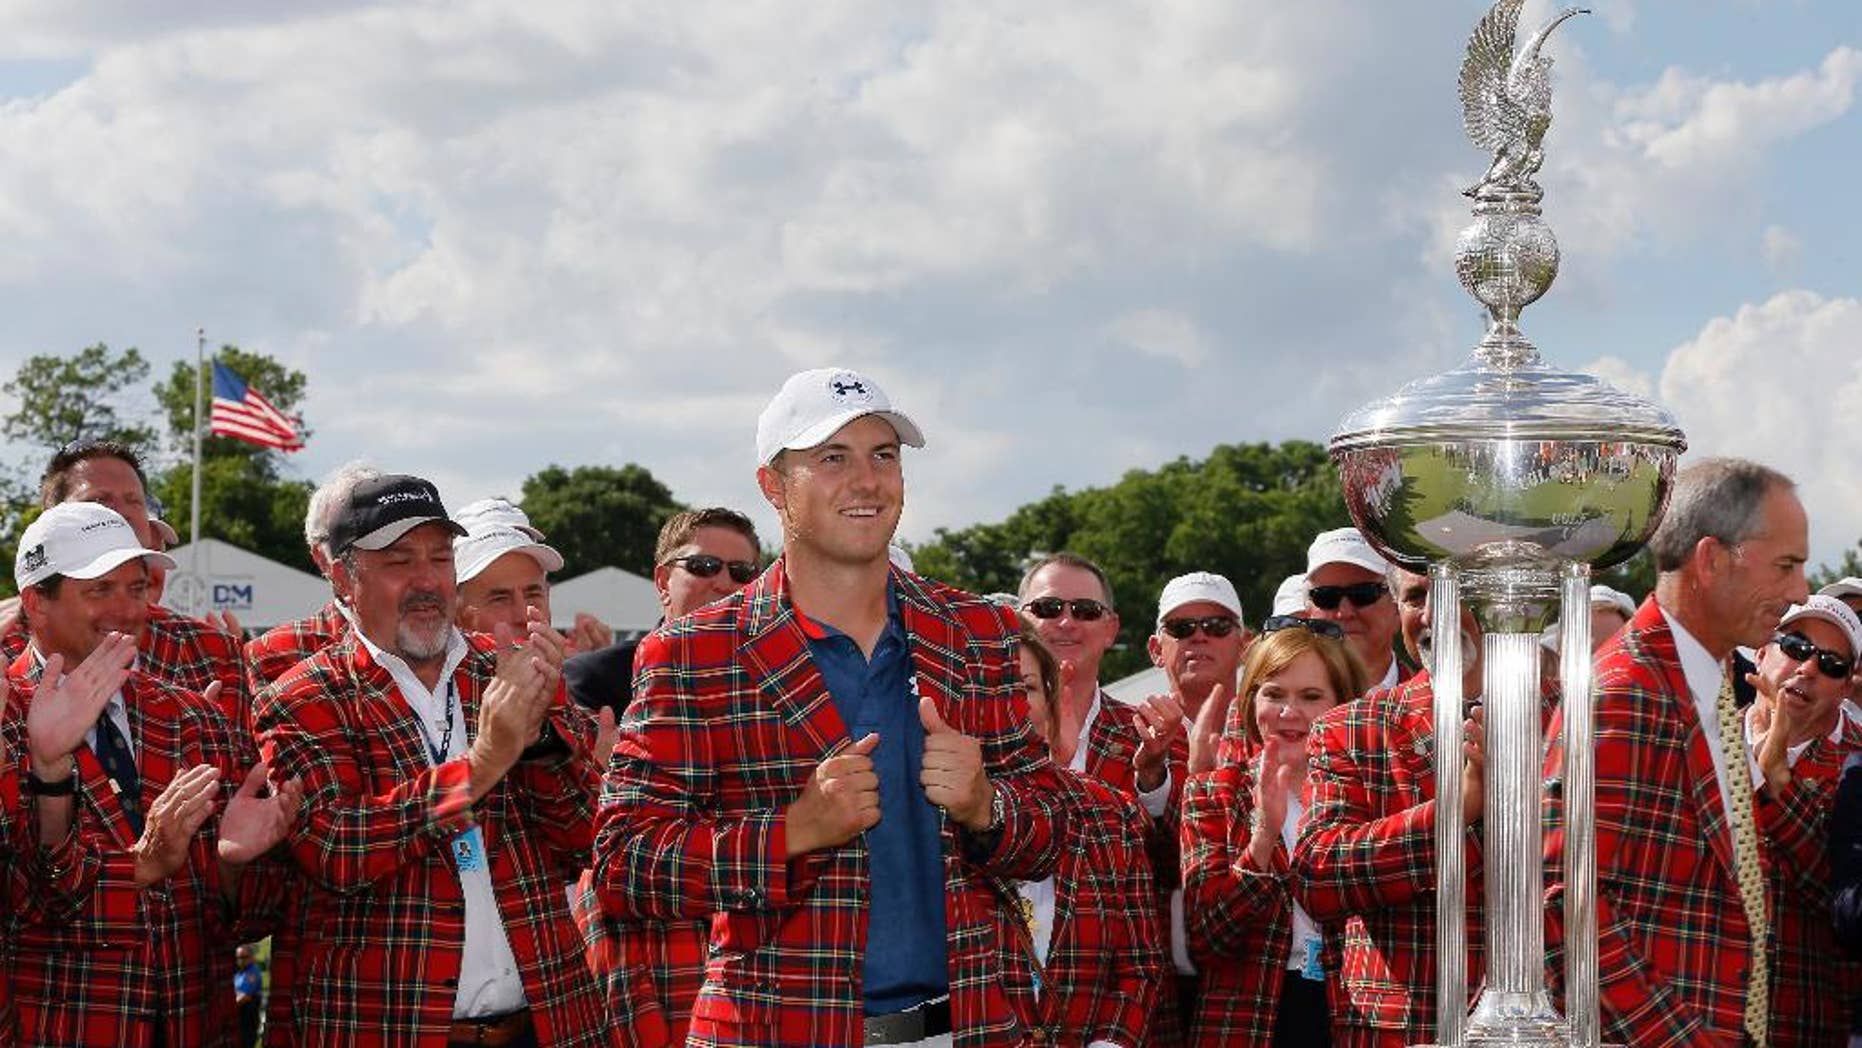 Jordan Spieth poses for photos after being presented with the plead jacket after winning the Dean & DeLuca Invitational golf tournament at Colonial, Sunday, May 29, 2016, in Fort Worth, Texas. (AP Photo/Tony Gutierrez)